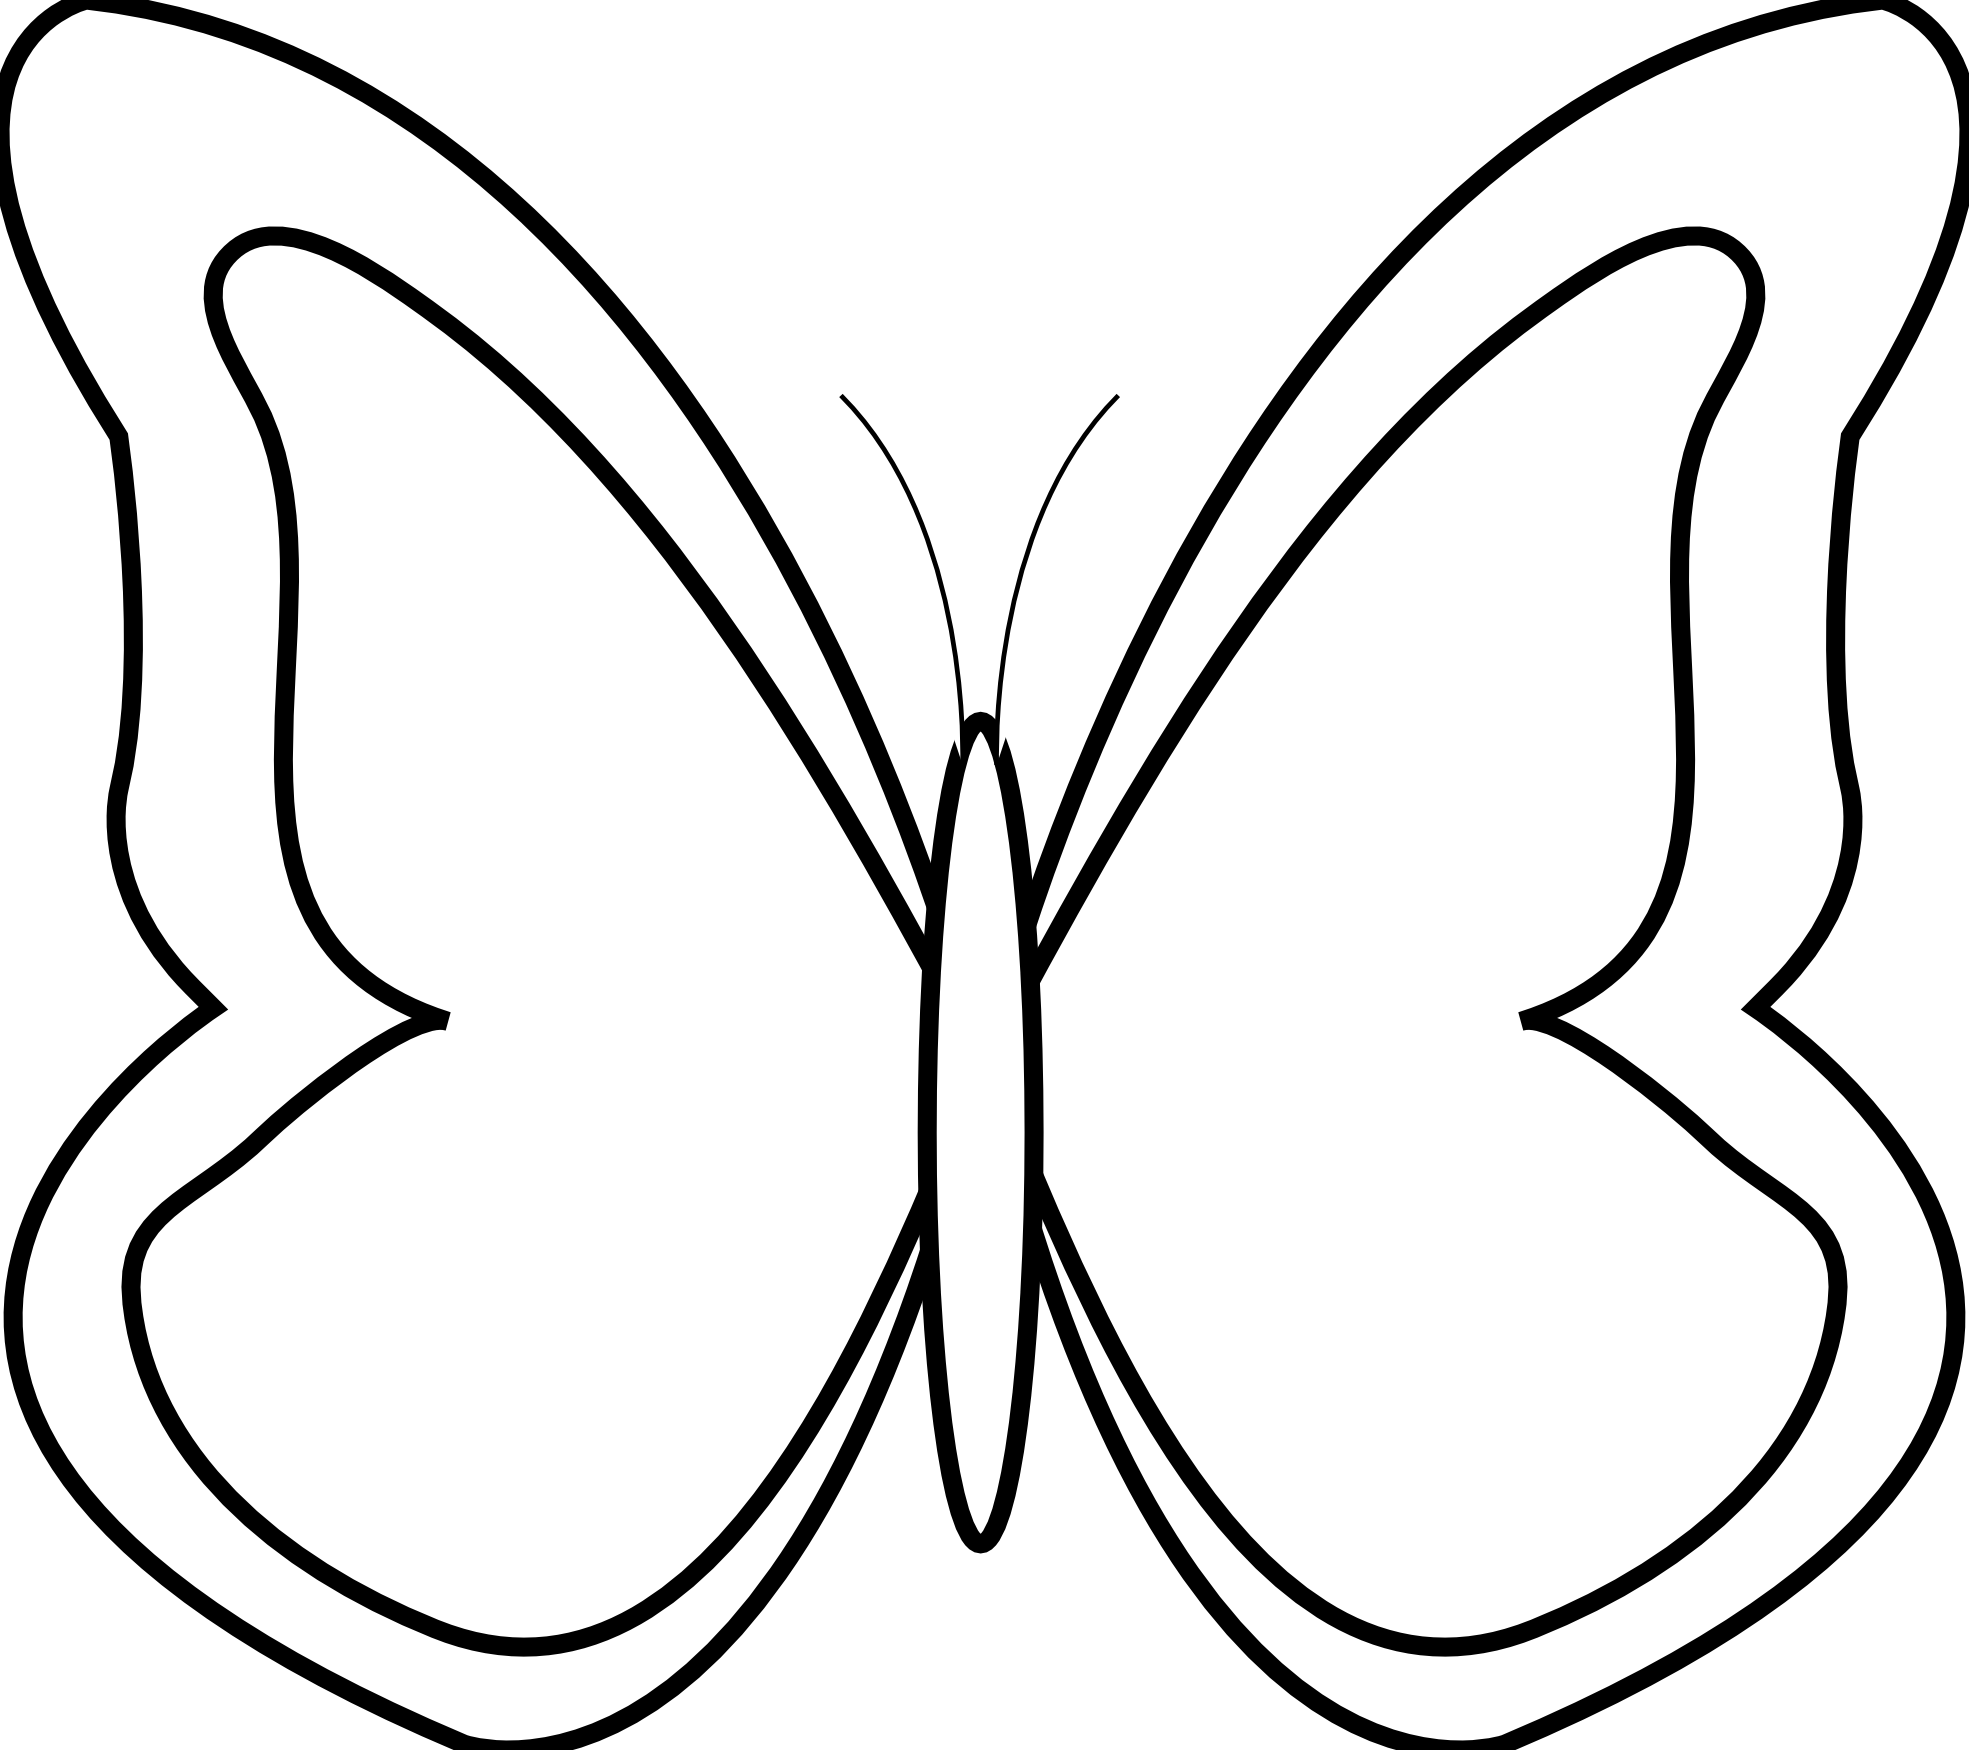 Butterfly 26 Black White Line Art Scalable Vector Graphics Svg Inkscape Adobe Illustrator Clip A Butterfly Clip Art Butterfly Black And White Butterfly Outline [ 1750 x 1969 Pixel ]